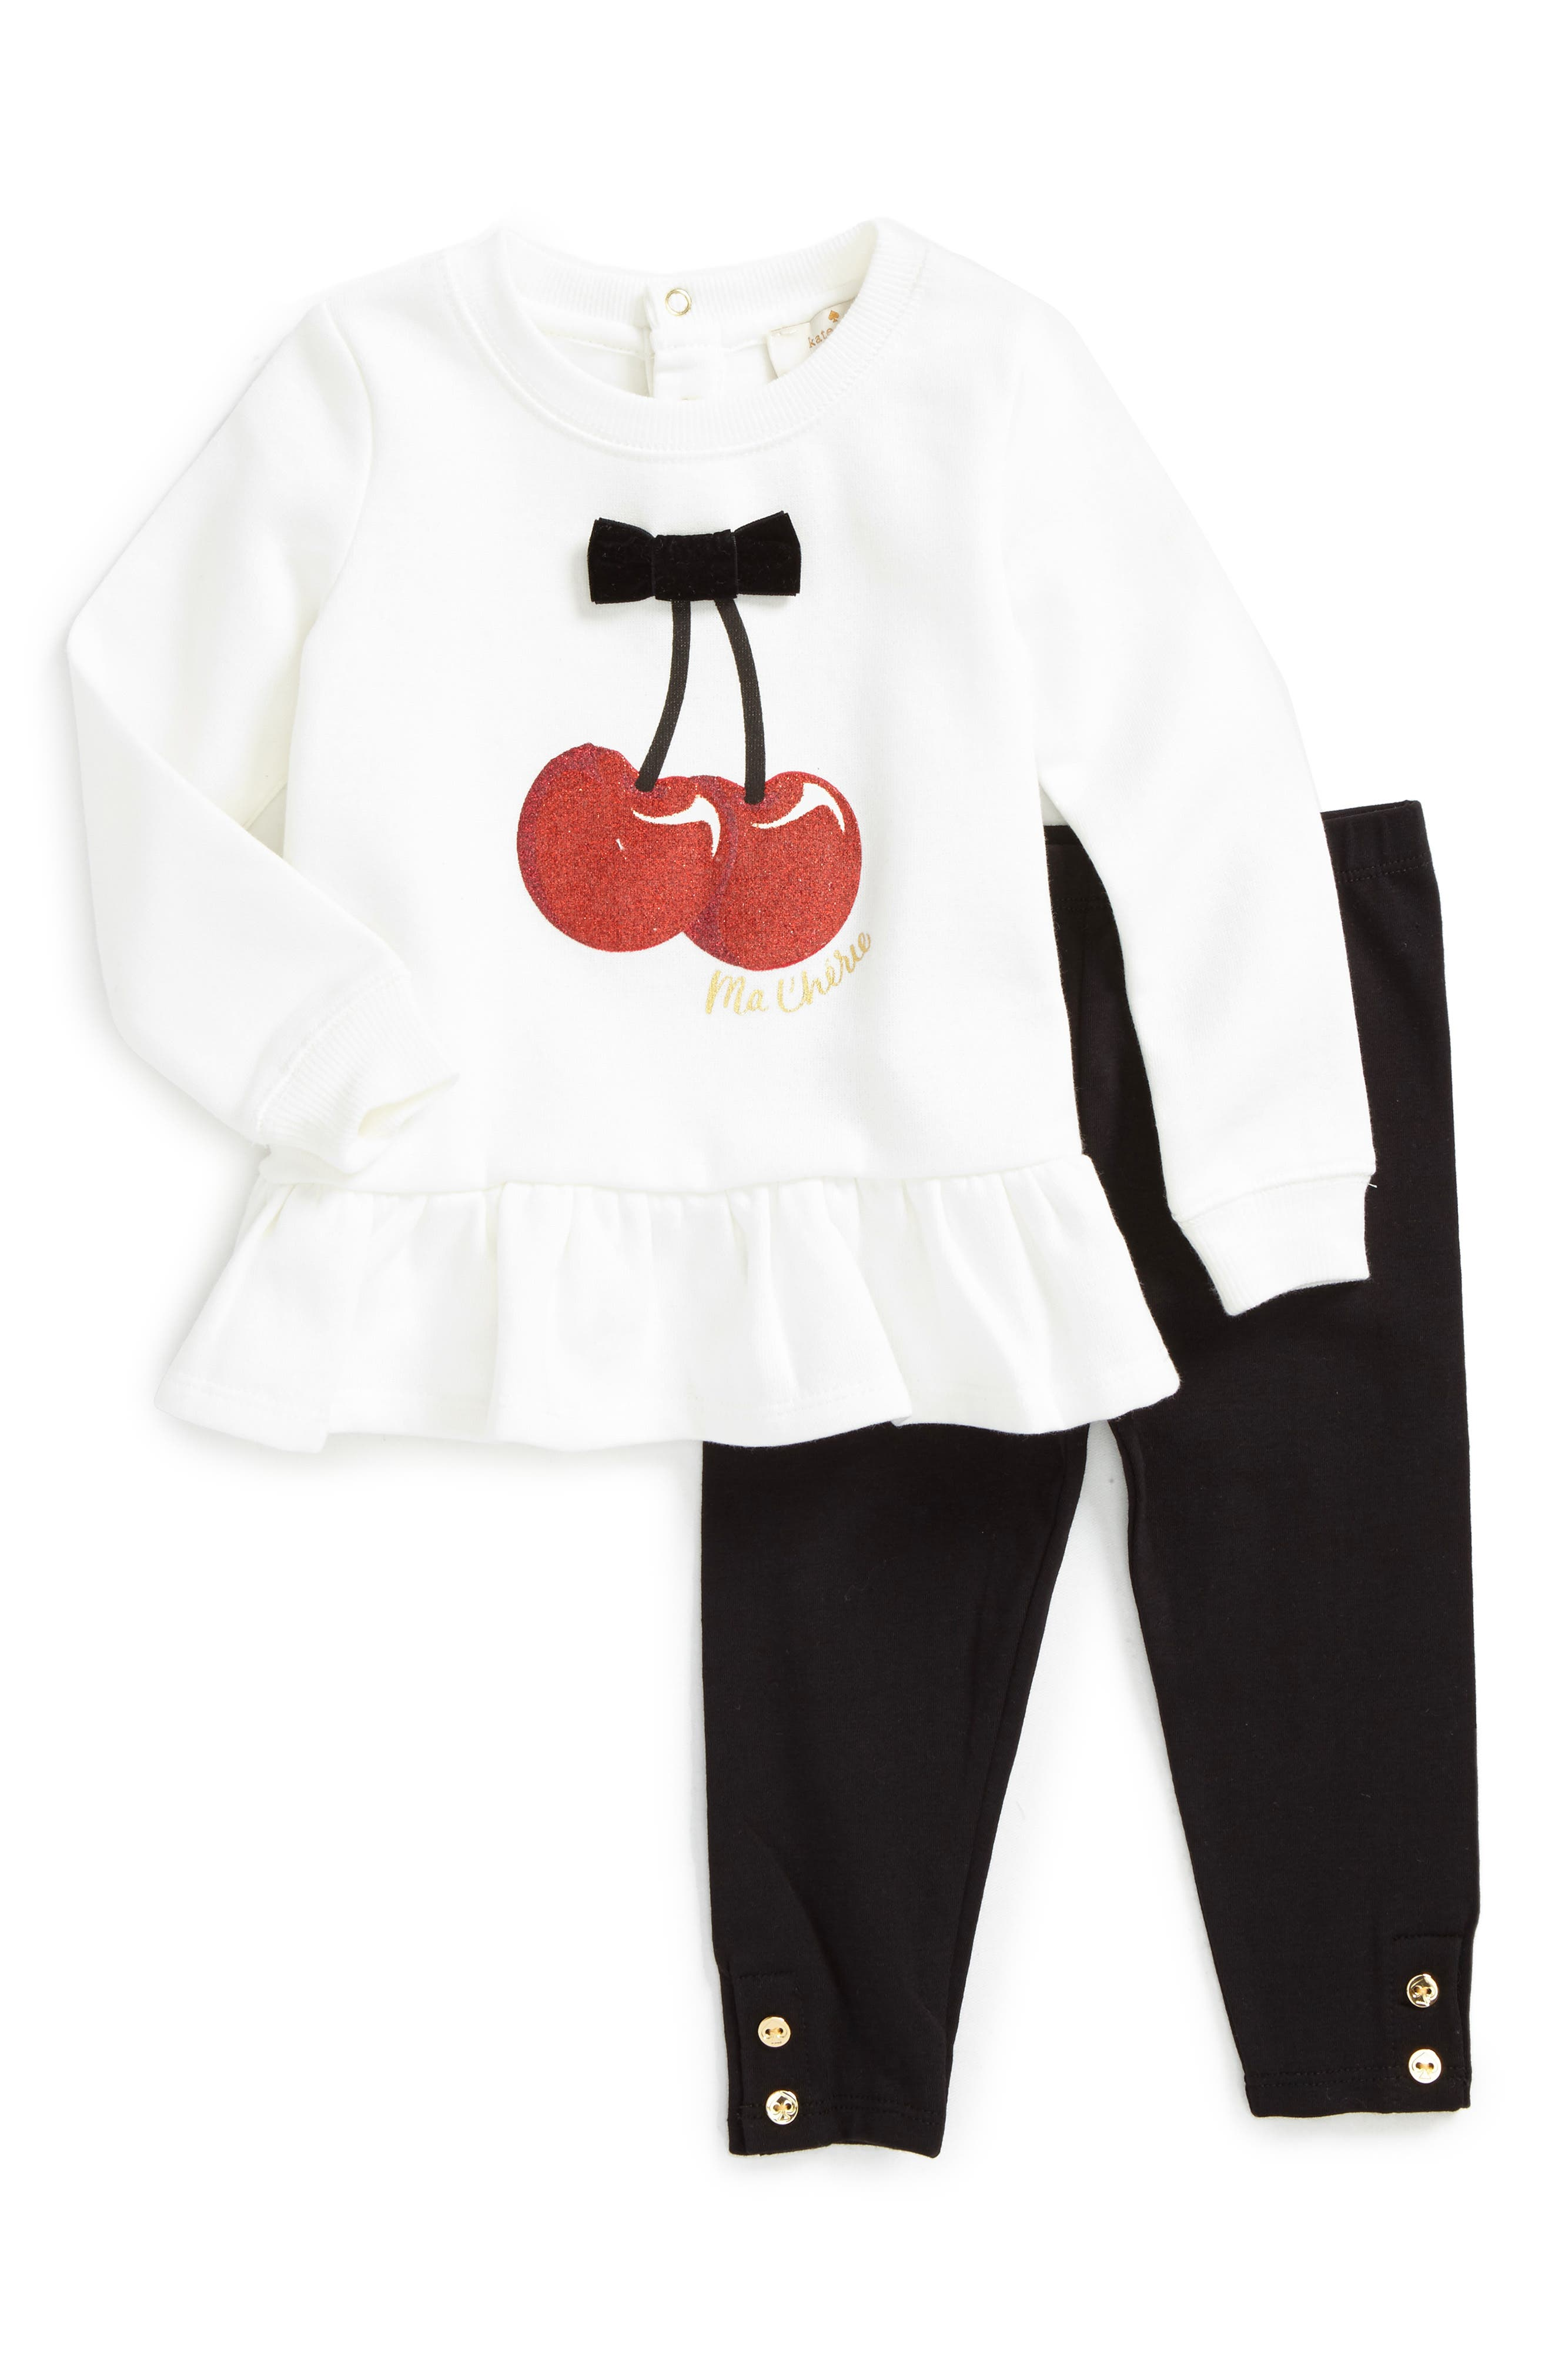 Main Image - kate spade new york ma chérie graphic top & leggings set (Baby Girls)